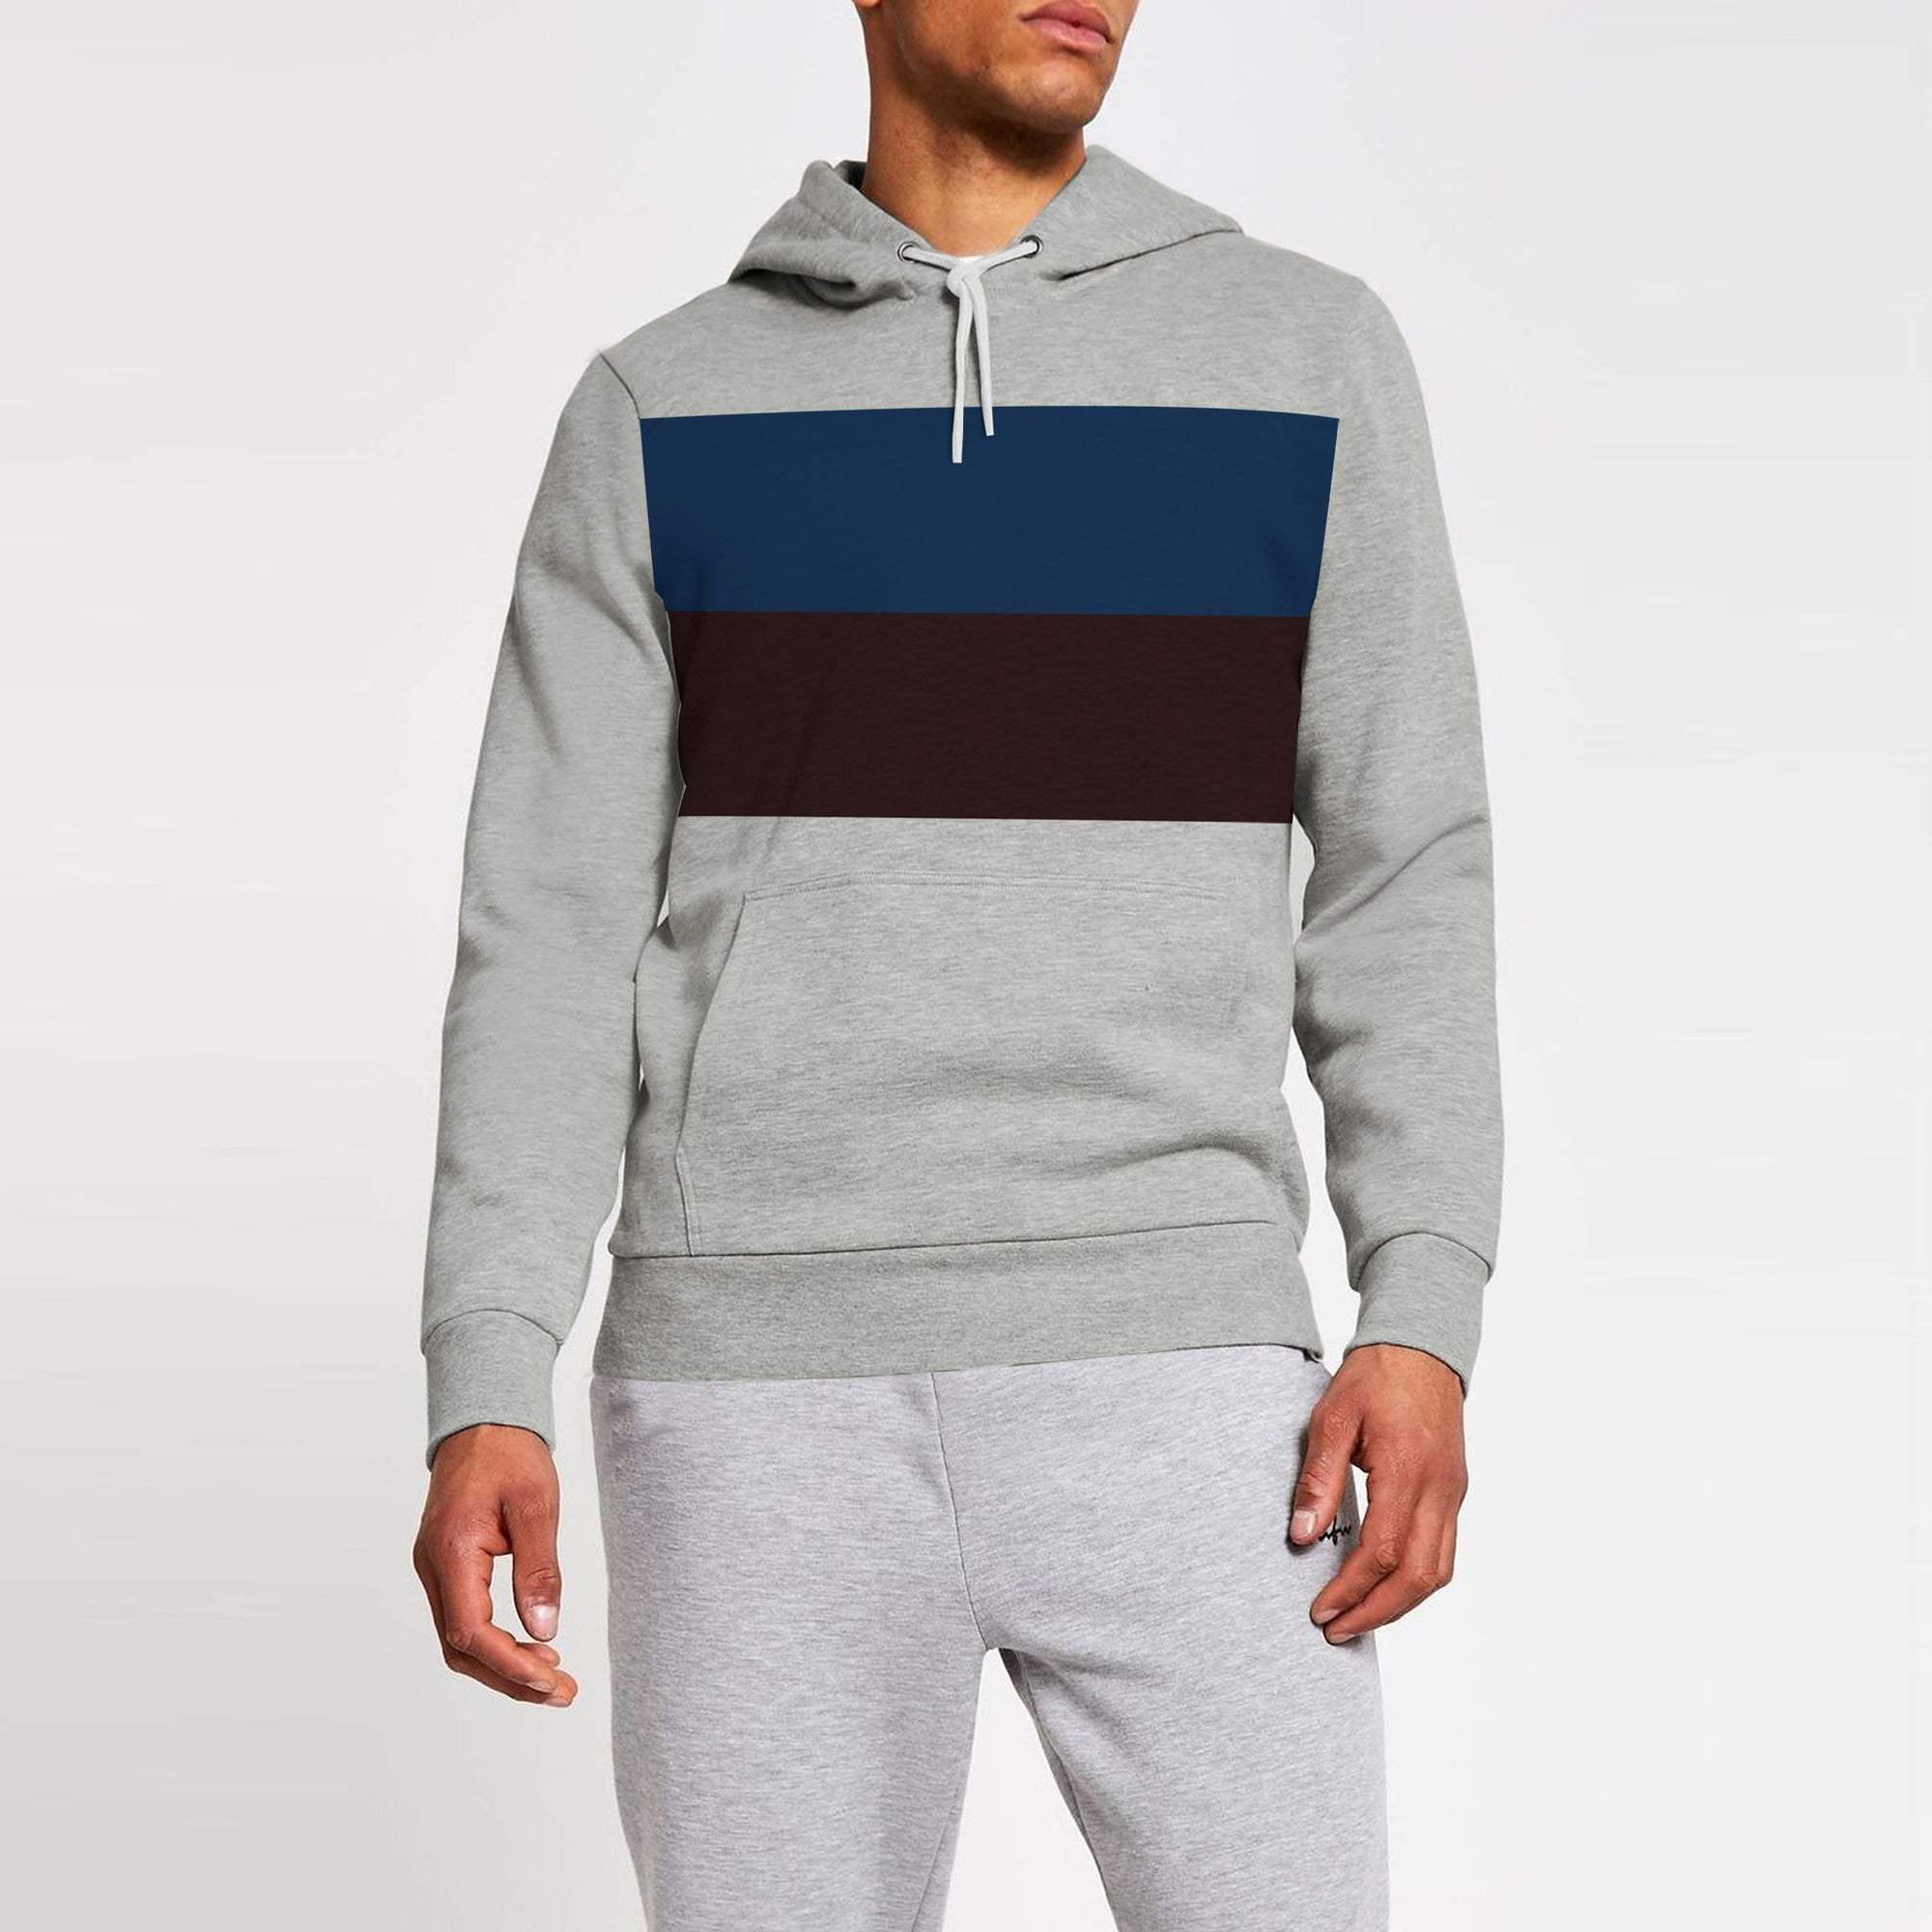 New Stylish Terry Fleece Pullover Hoodie For Men-Grey Melange With Dark Blue & Dark Maroon Panel-SP1665